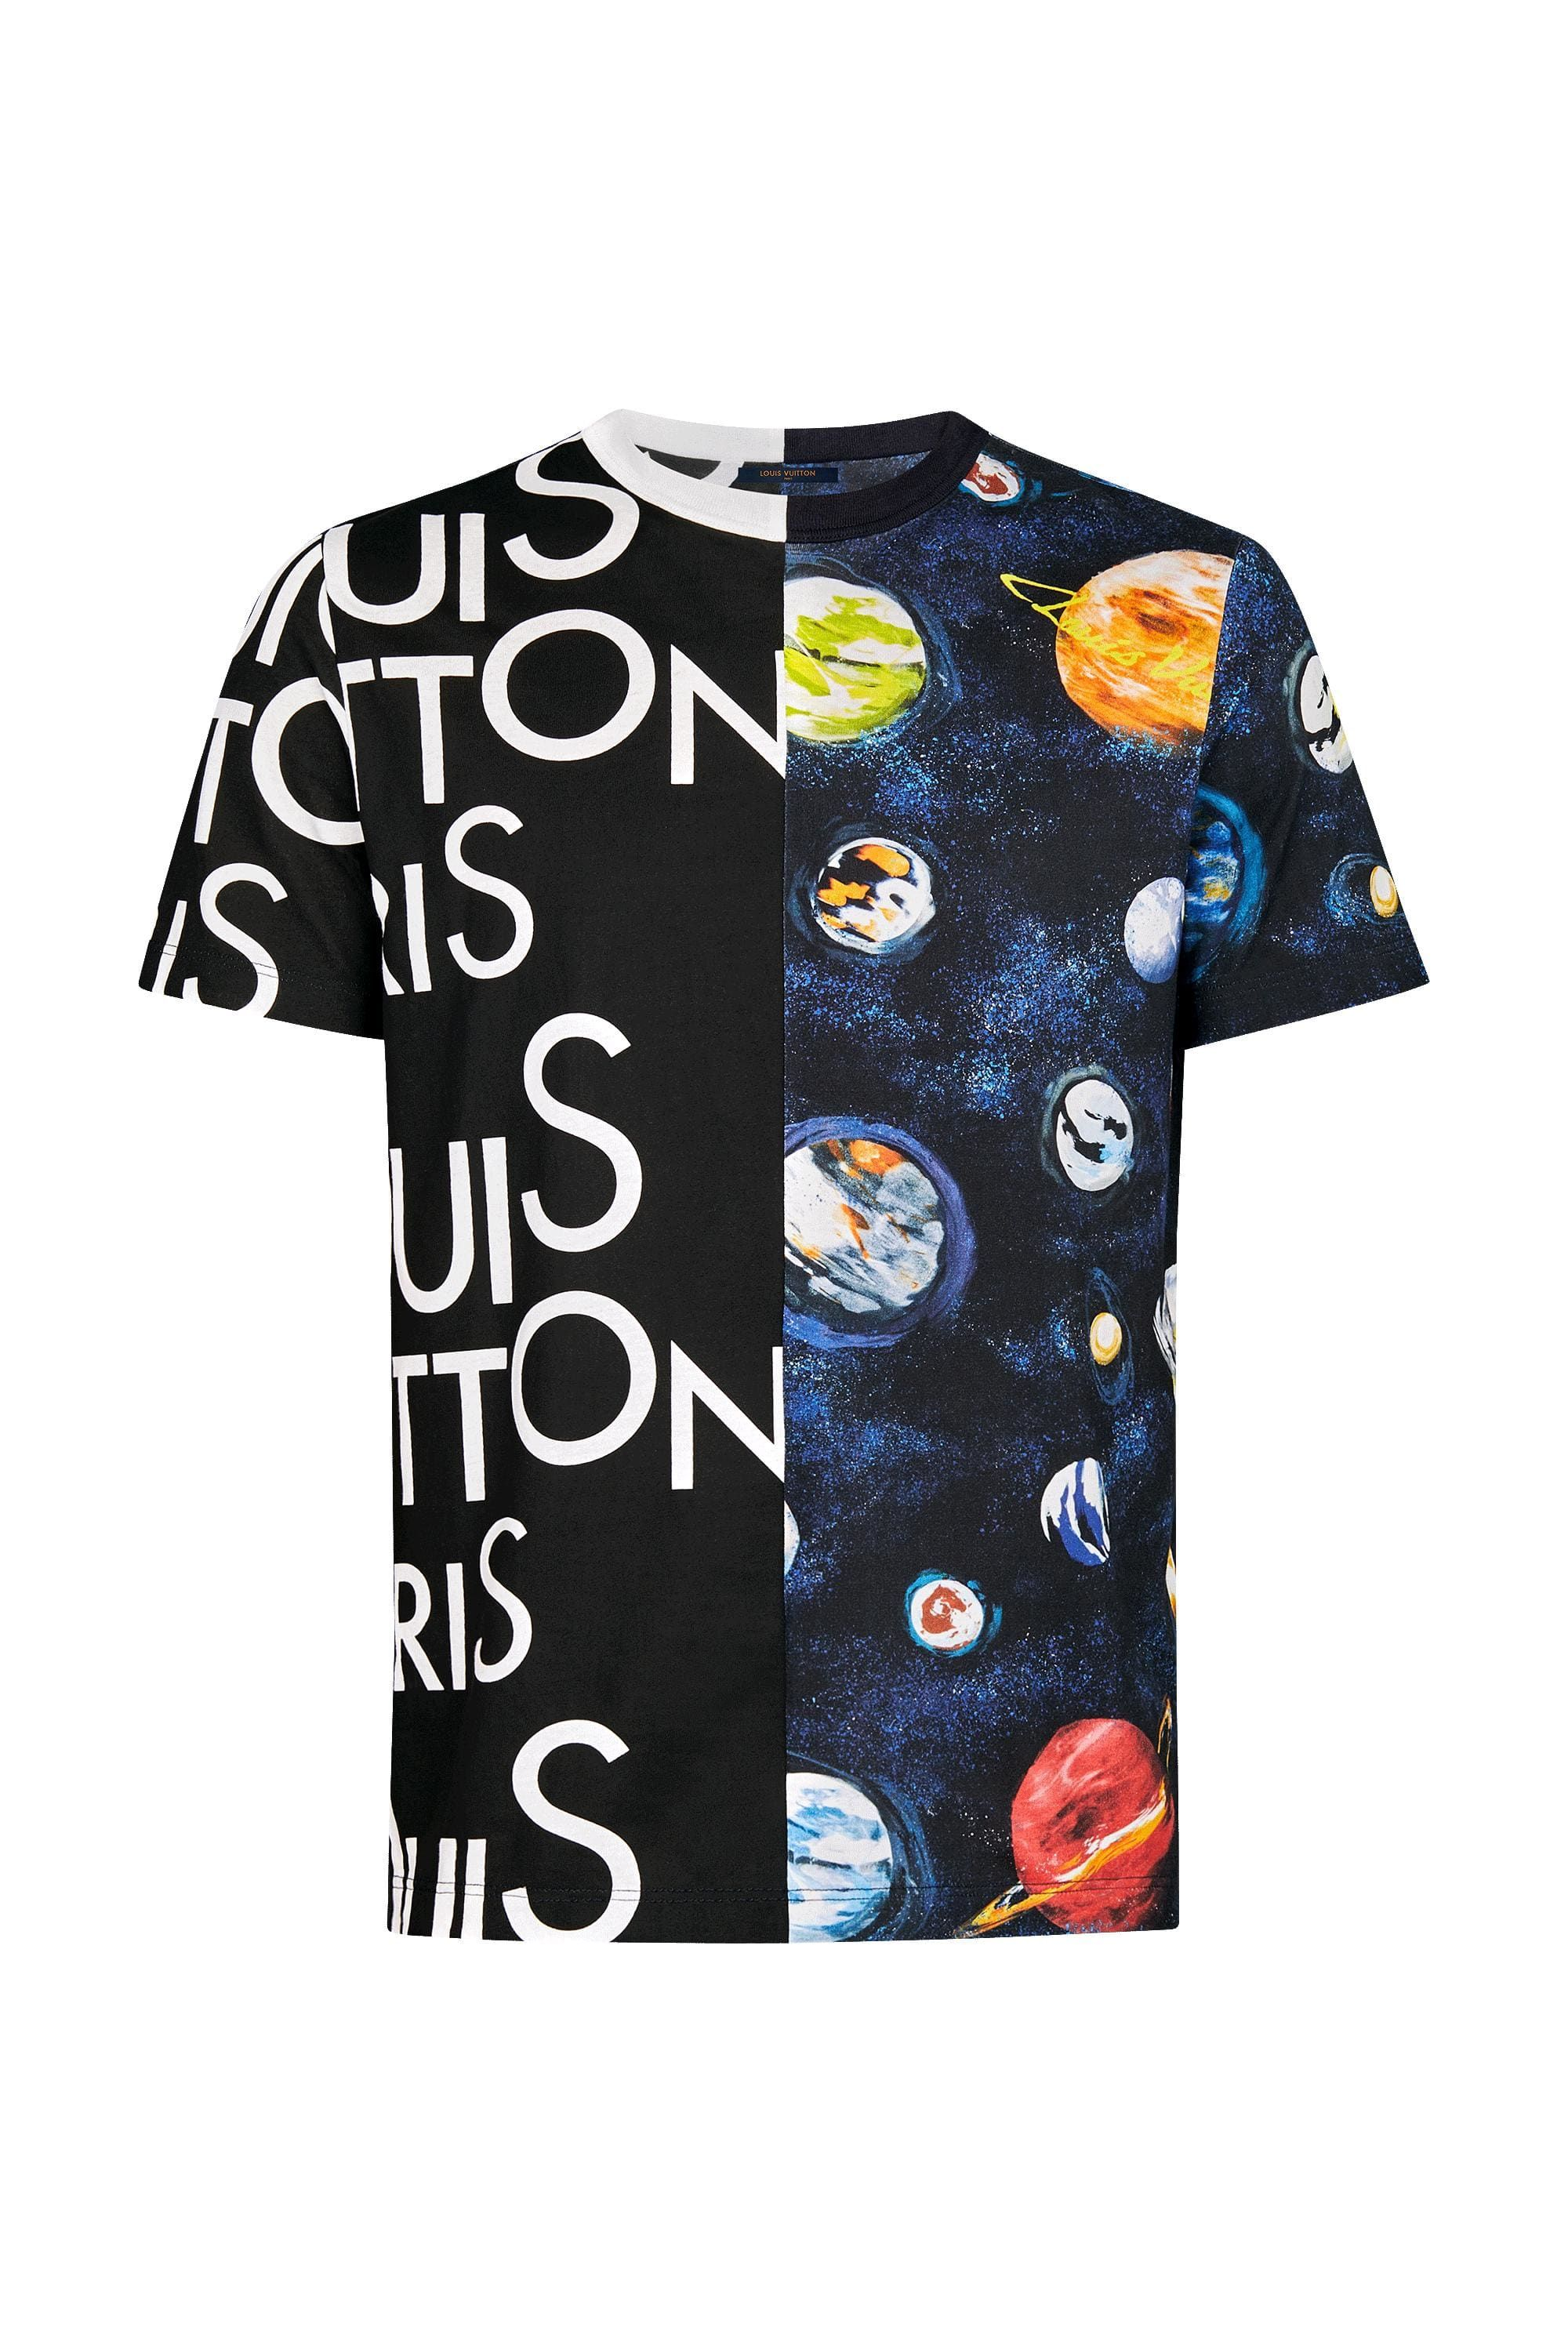 12384a7baf Pin by Steve on JPWTBLK in 2019 | Galaxy t shirt, Louis vuitton ...